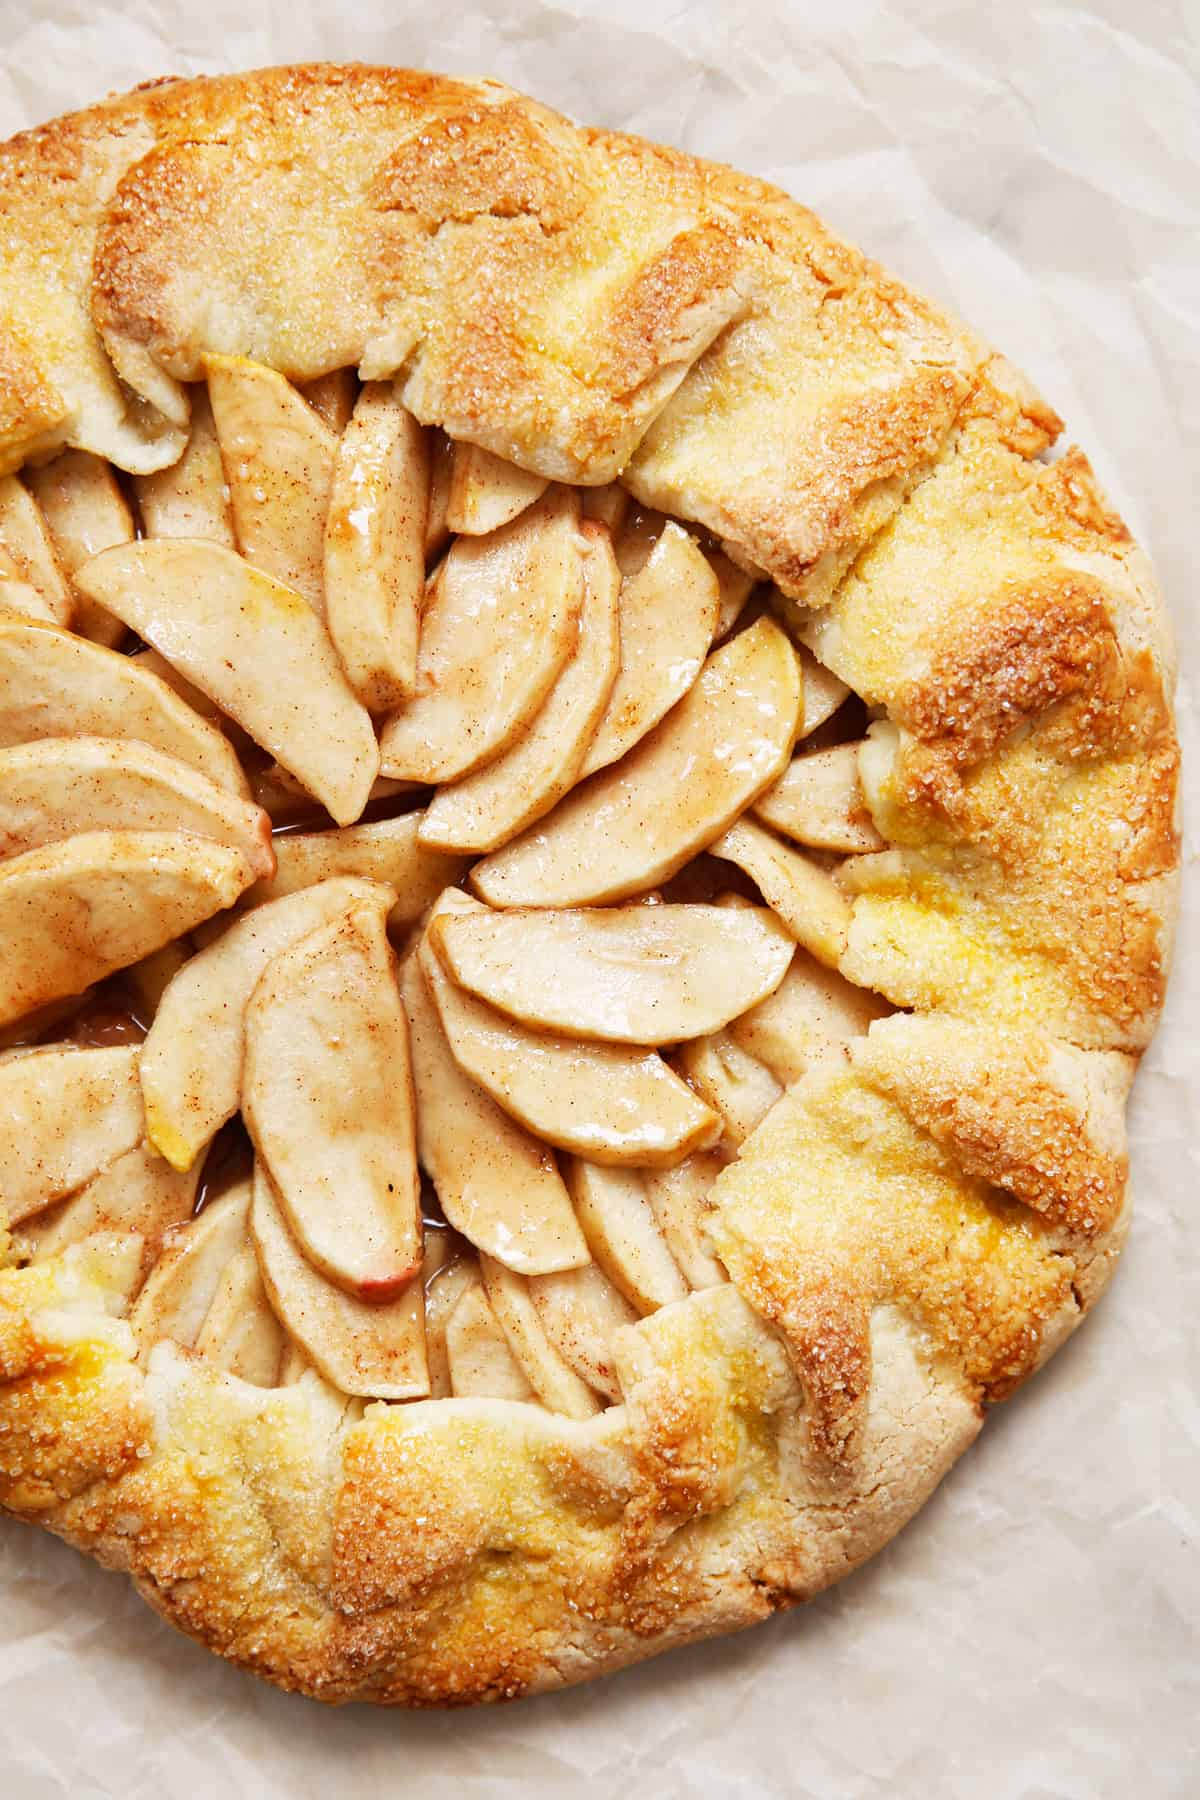 A whole gluten free apple galette